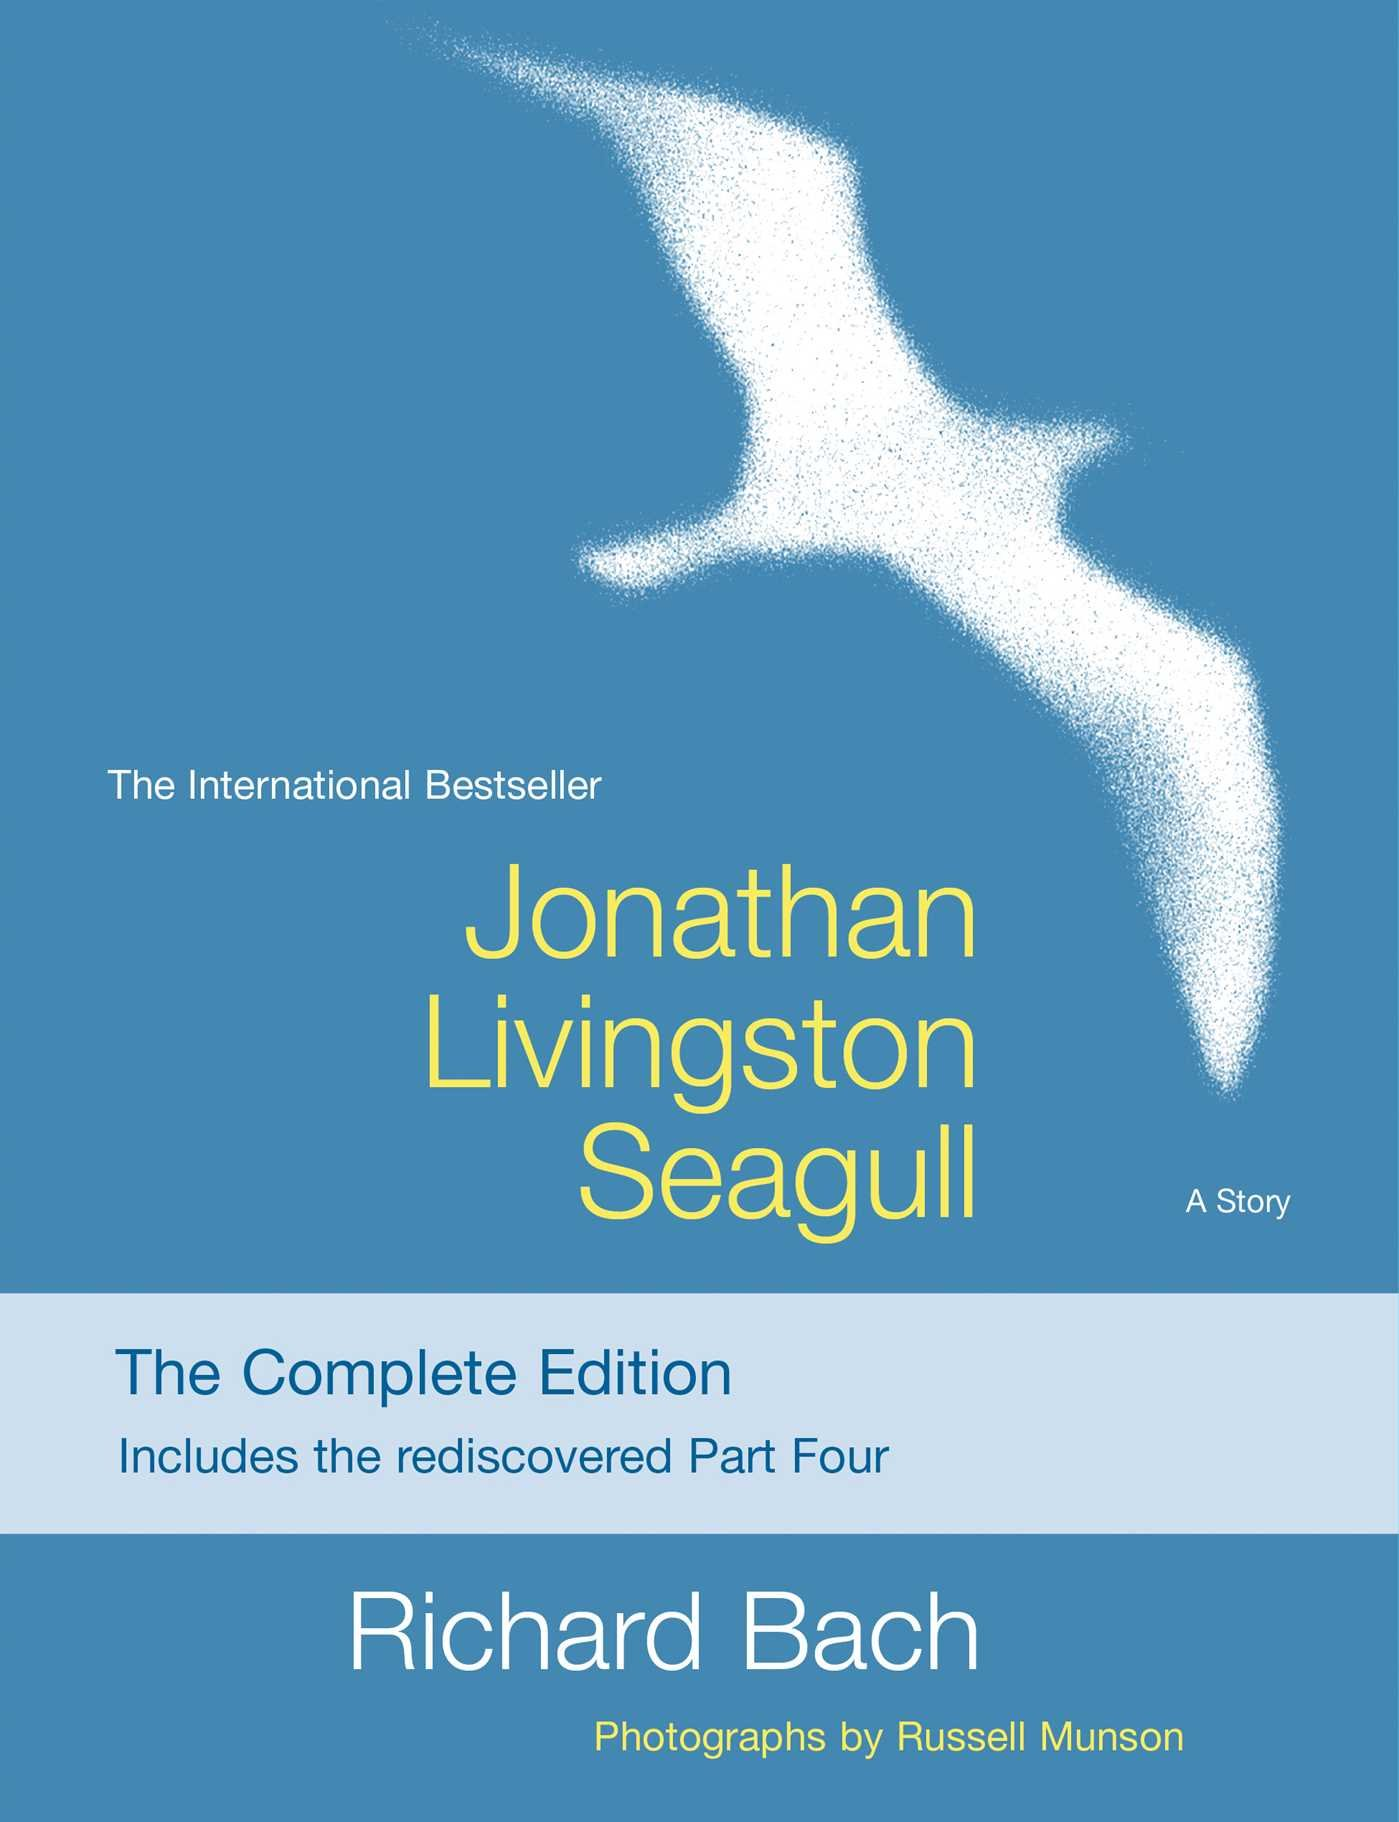 Jonathan Livingstone Seagull - By Richard Bach